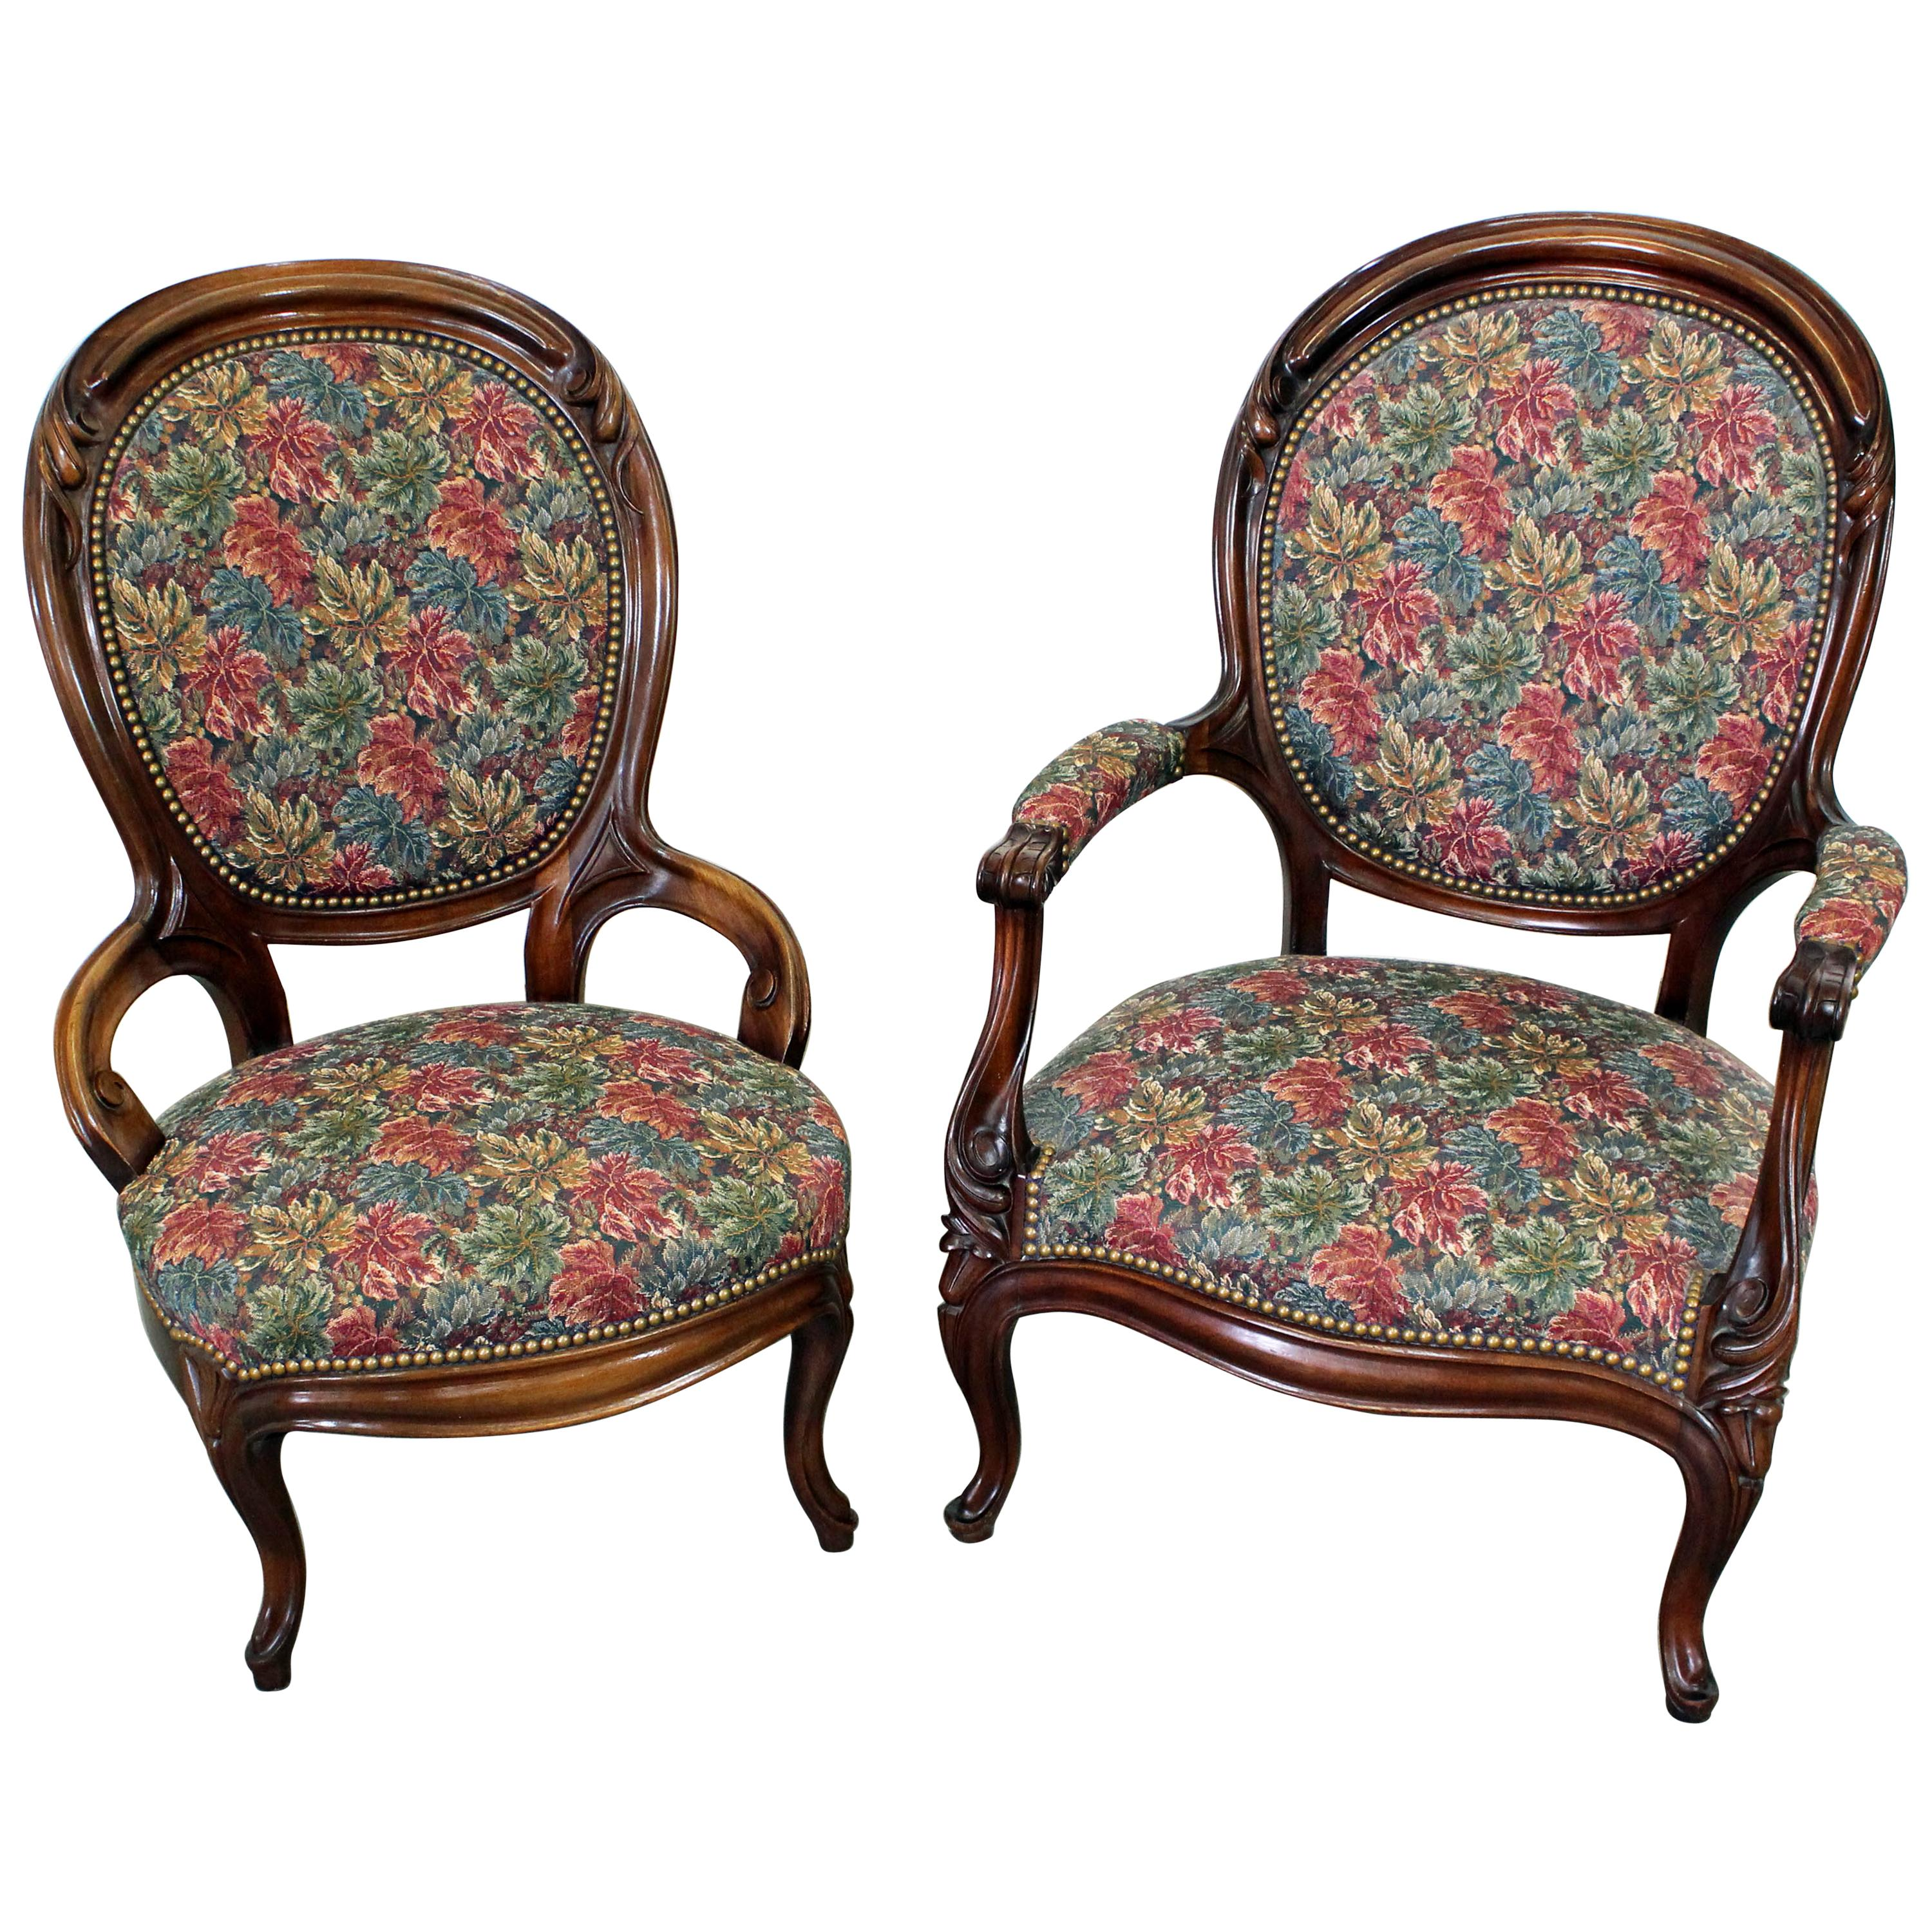 Antique Parlor Chairs Pair Of Vintage Victorian Parlor Set Ladies And Gentleman Chairs